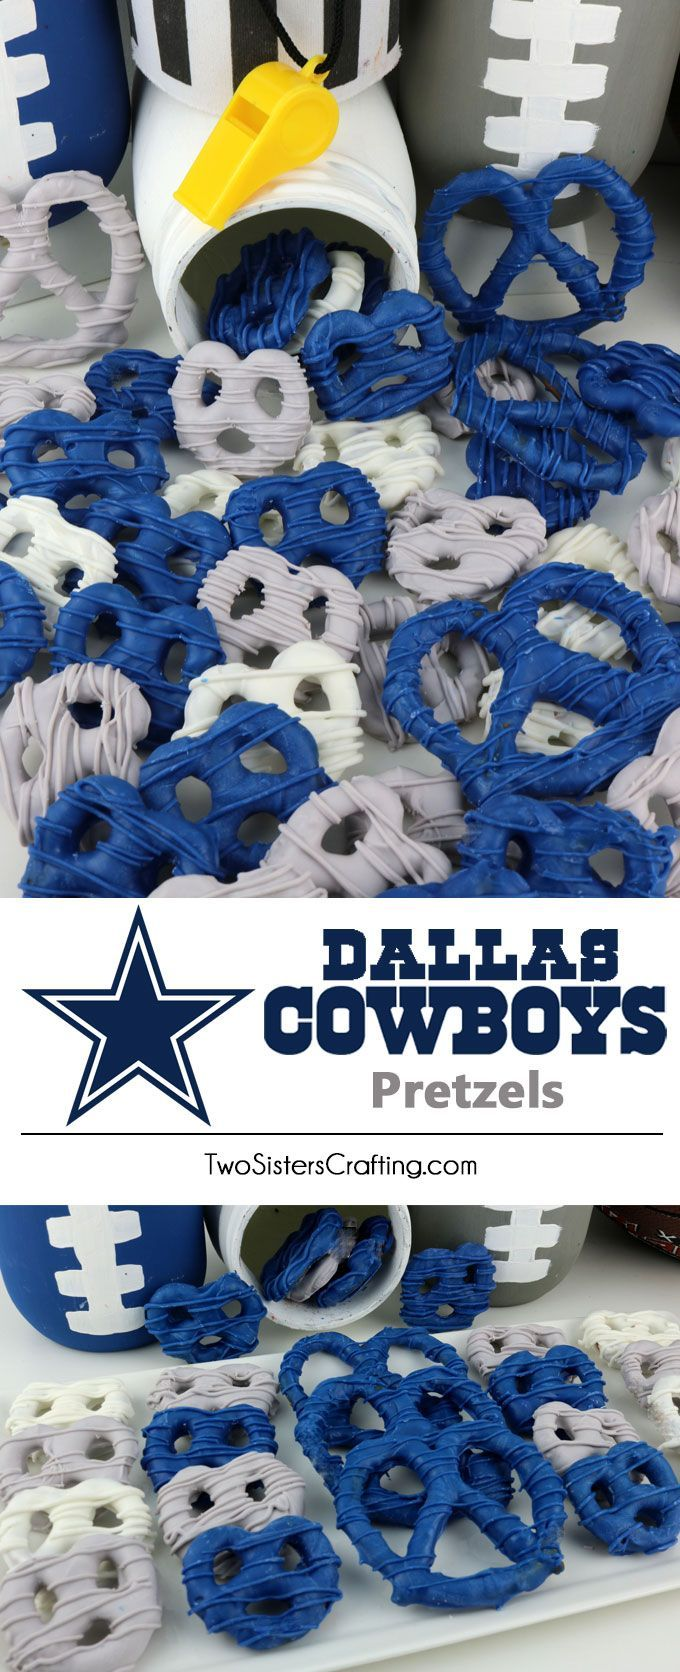 Cowboy party ideas goodtoknow - Best 25 Games Of Football Ideas On Pinterest Football All Football Games And Sports Food